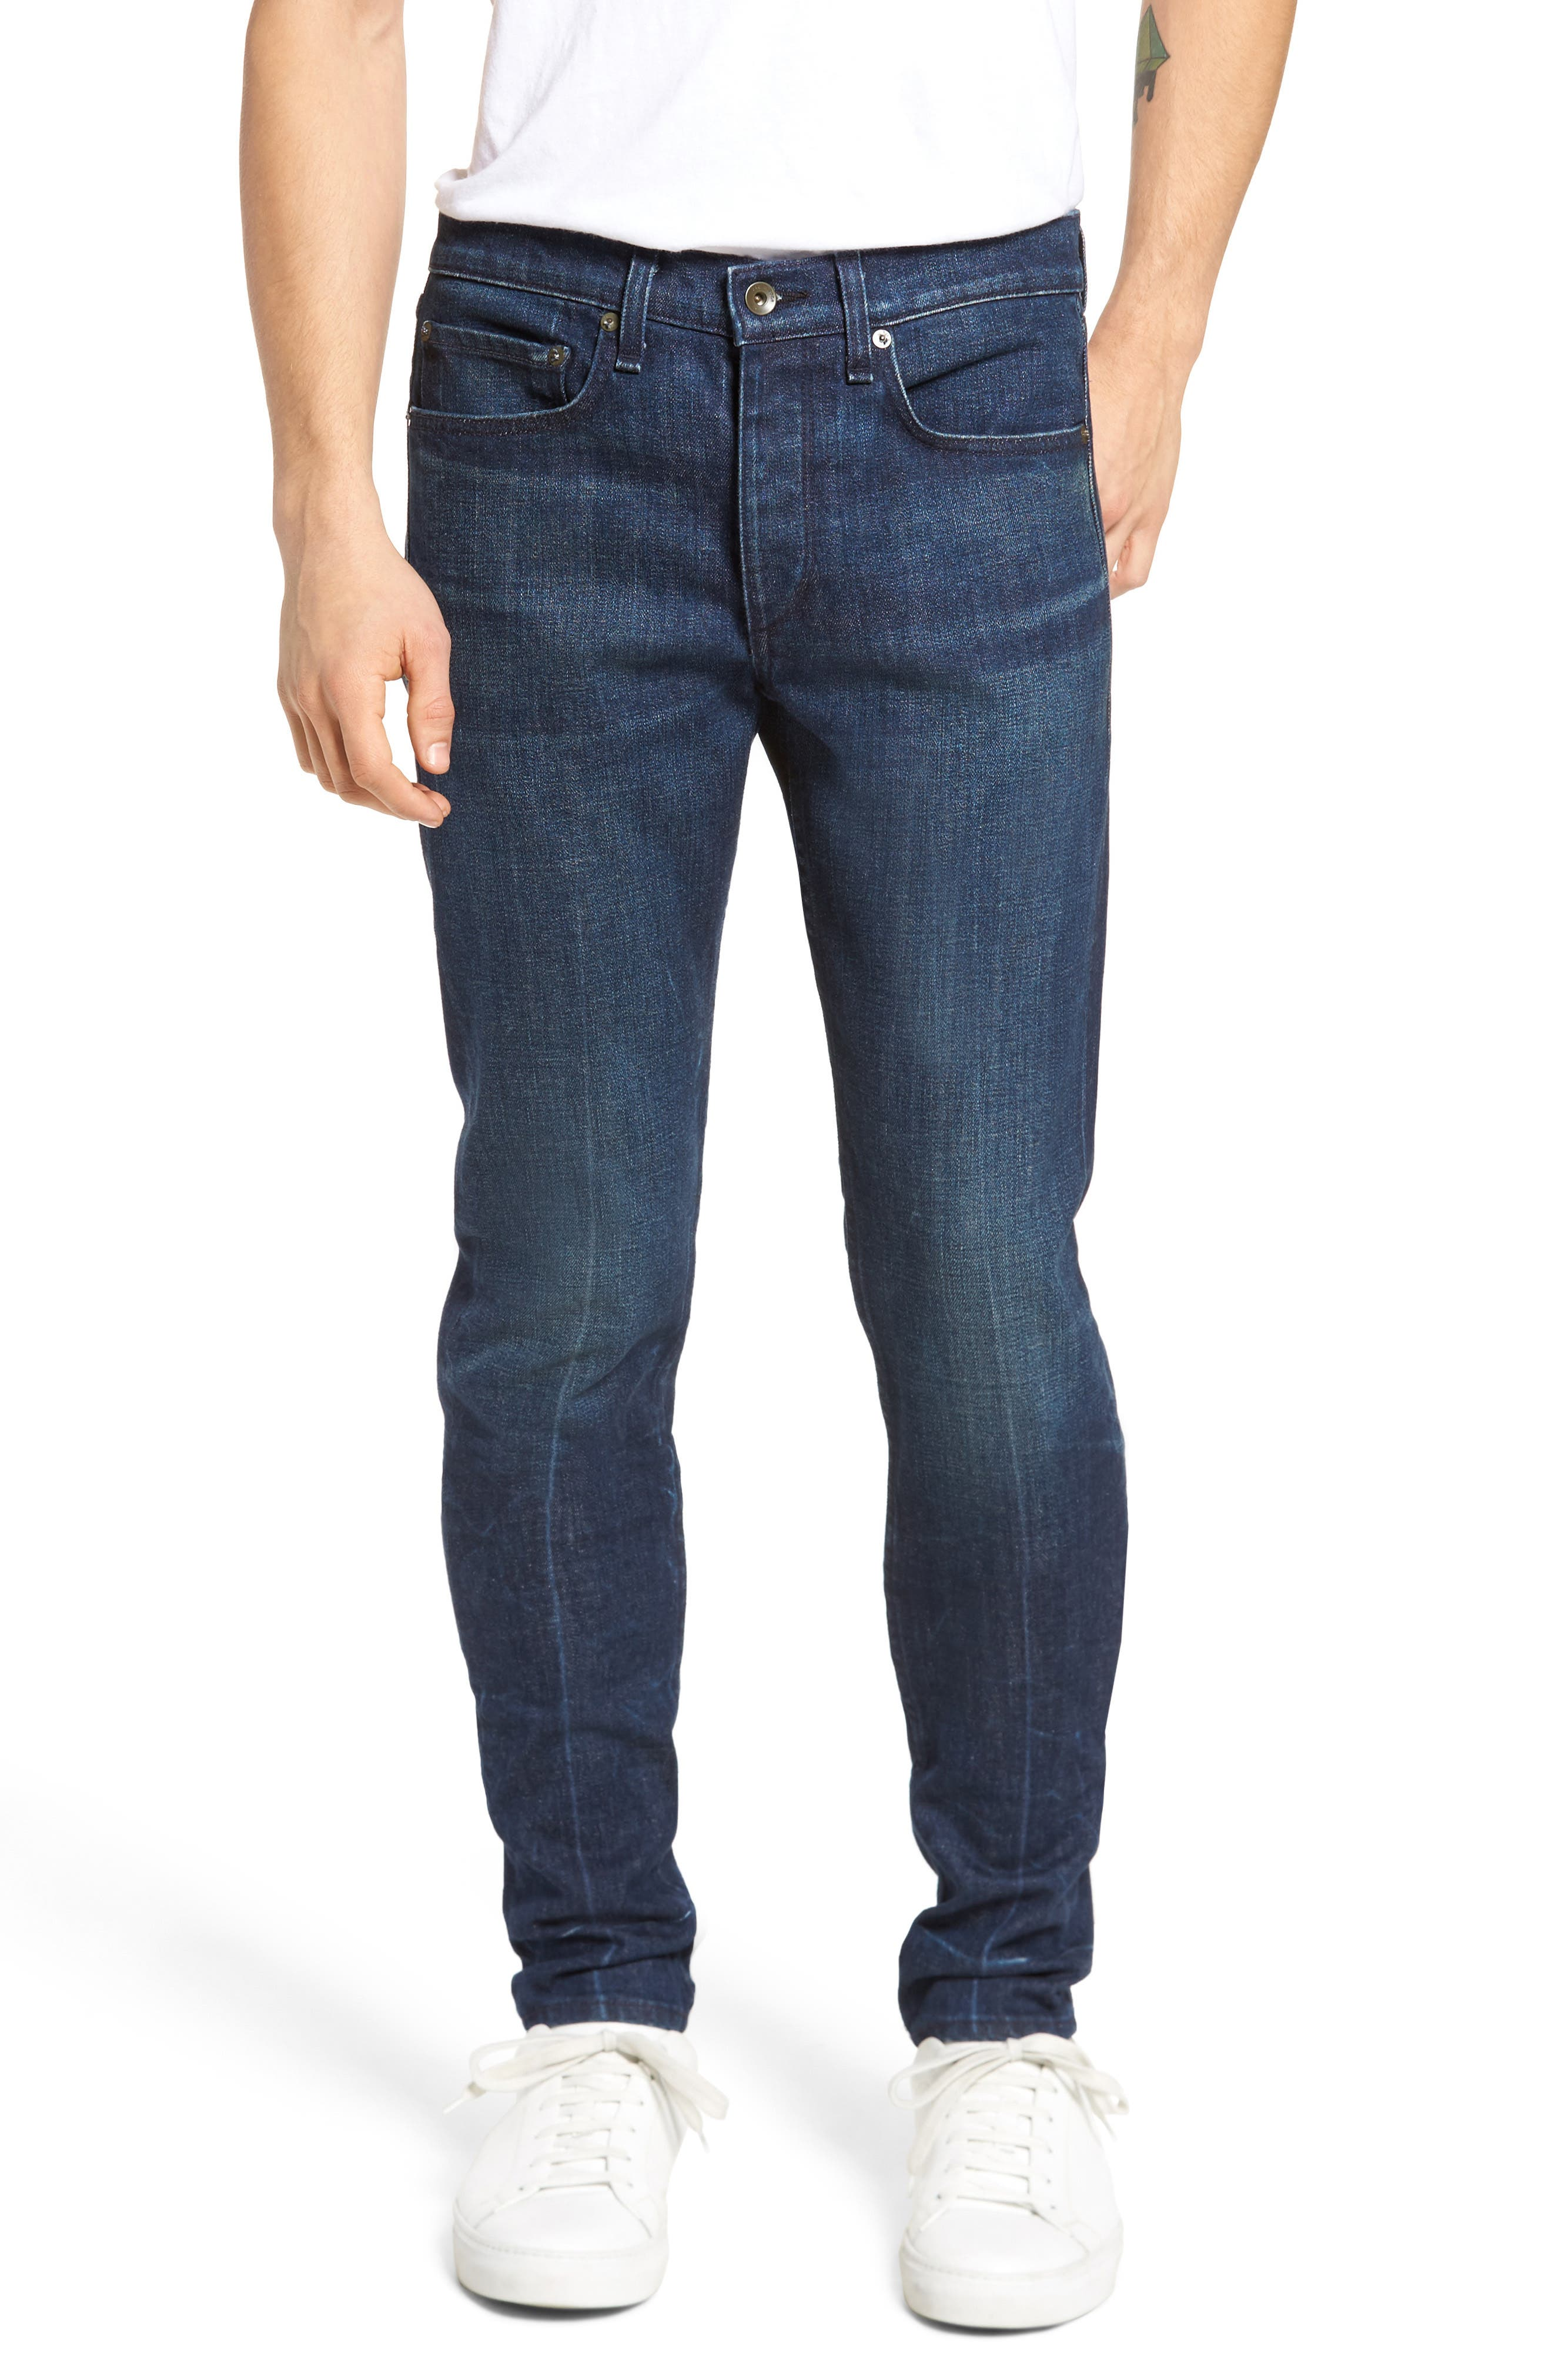 Fit 1 Skinny Fit Jeans,                         Main,                         color, 402